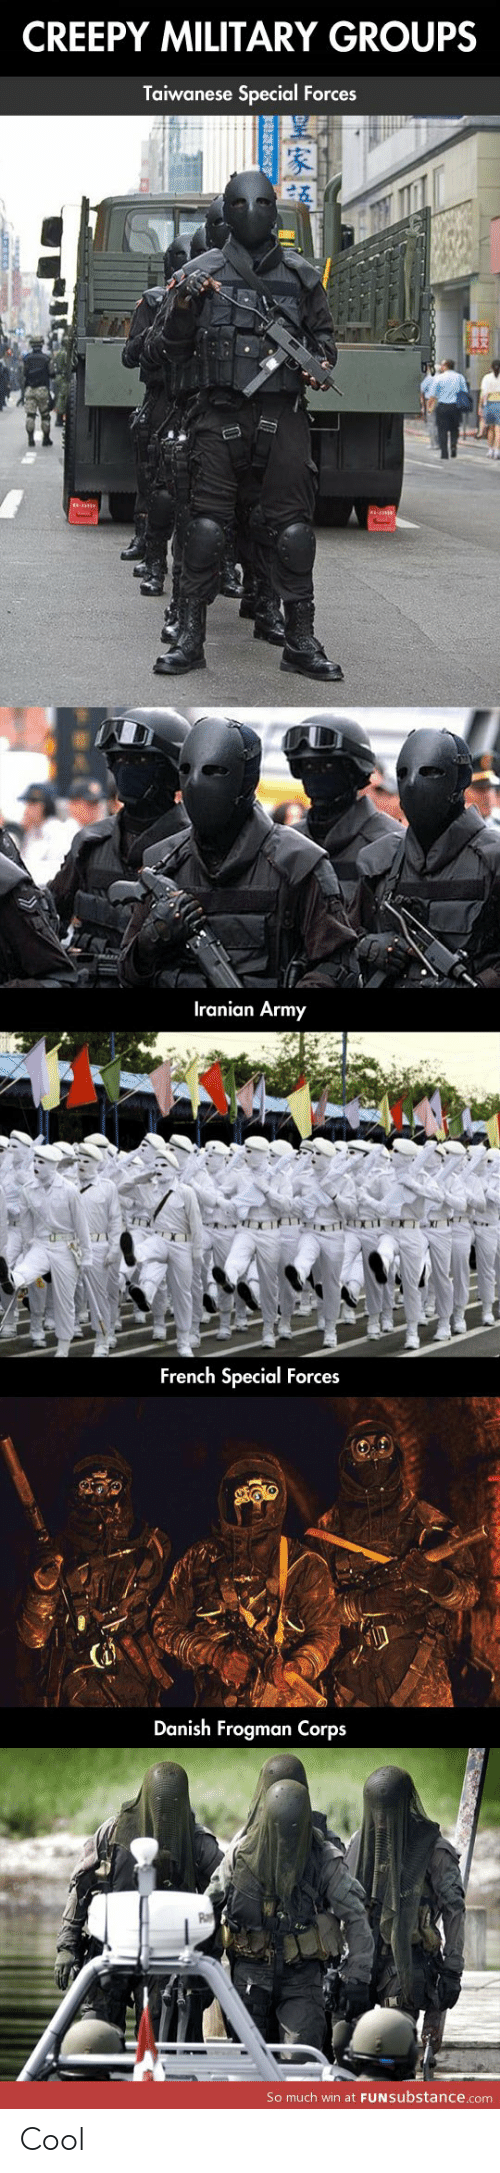 special forces: CREEPY MILITARY GROUPS  Taiwanese Special Forces  Iranian Army  French Special Forces  Danish Frogman Corps  So much win at FUNSubstance.com Cool